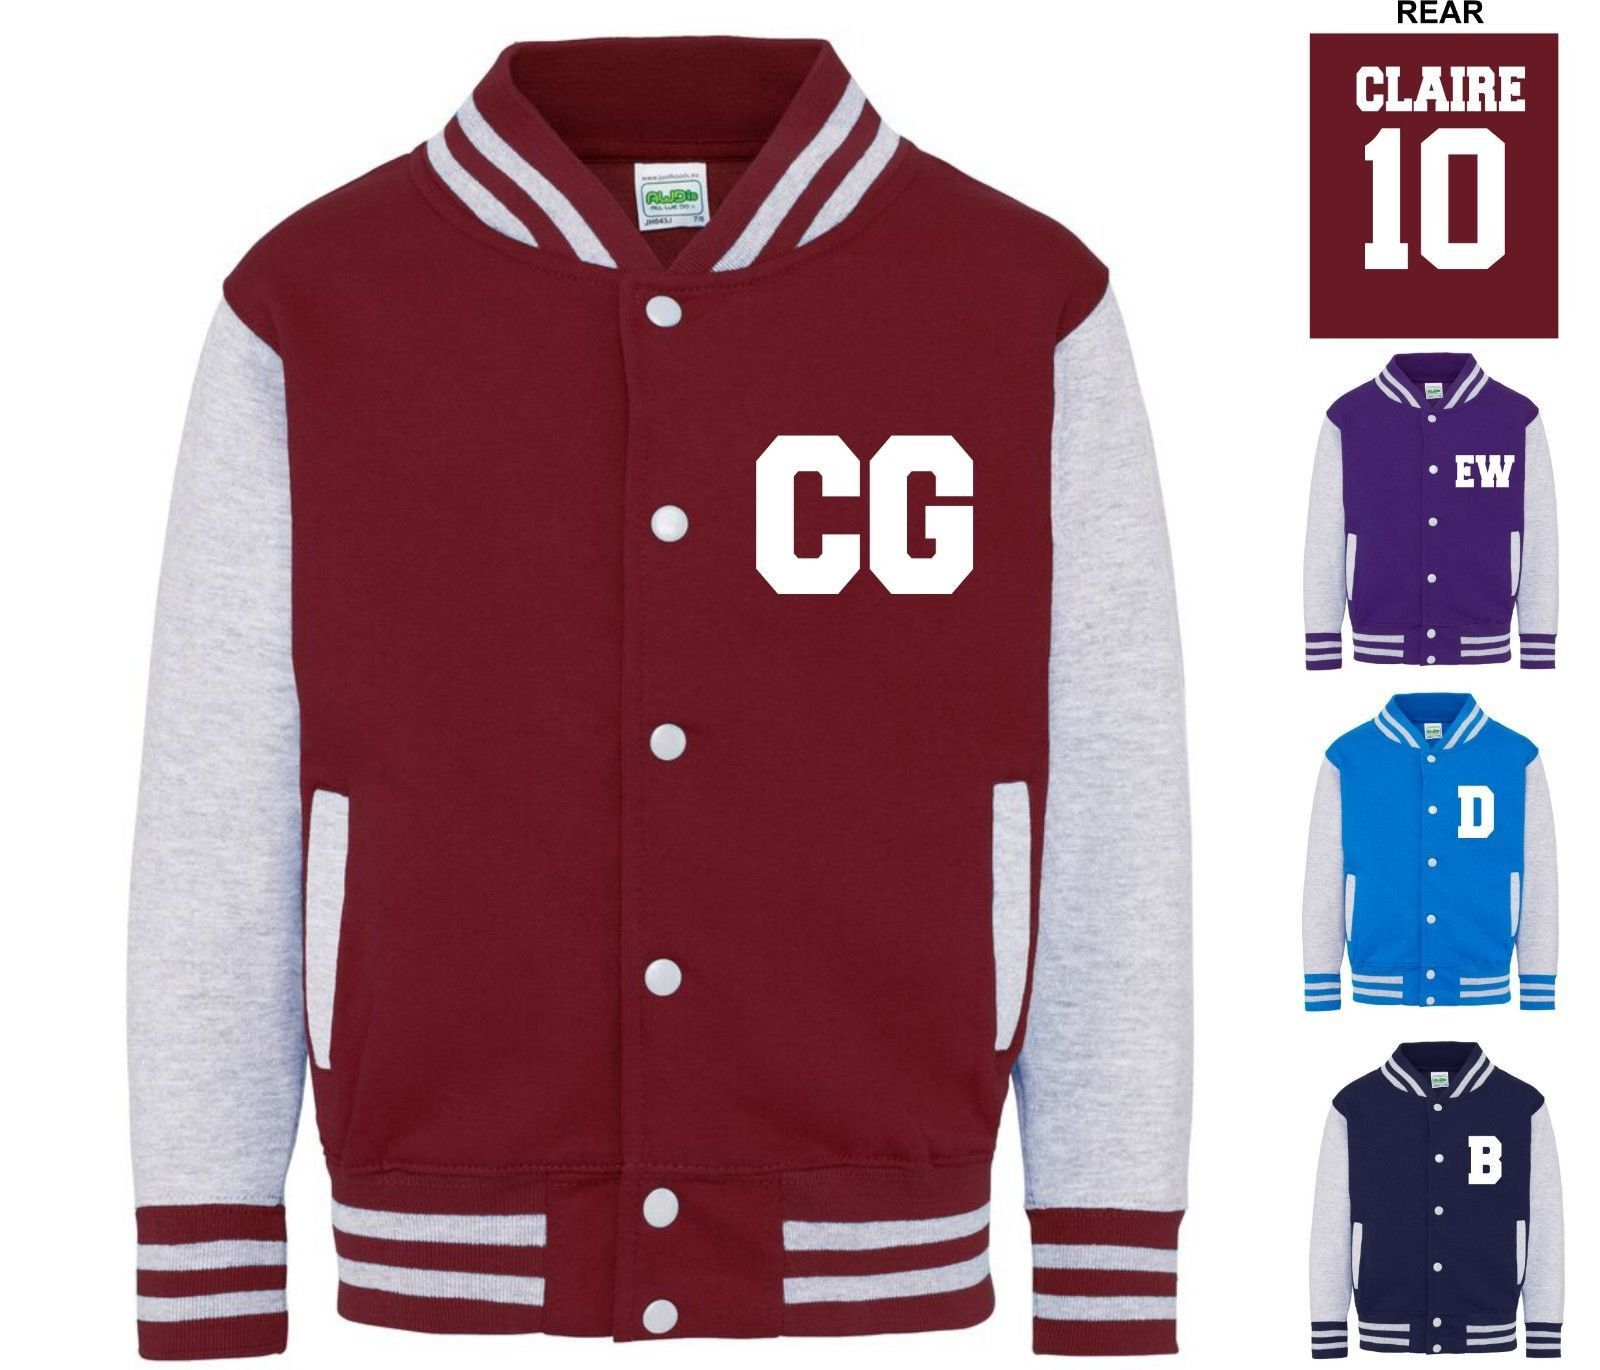 Kids Personalised Name & Number Varsity Letterman Jacket